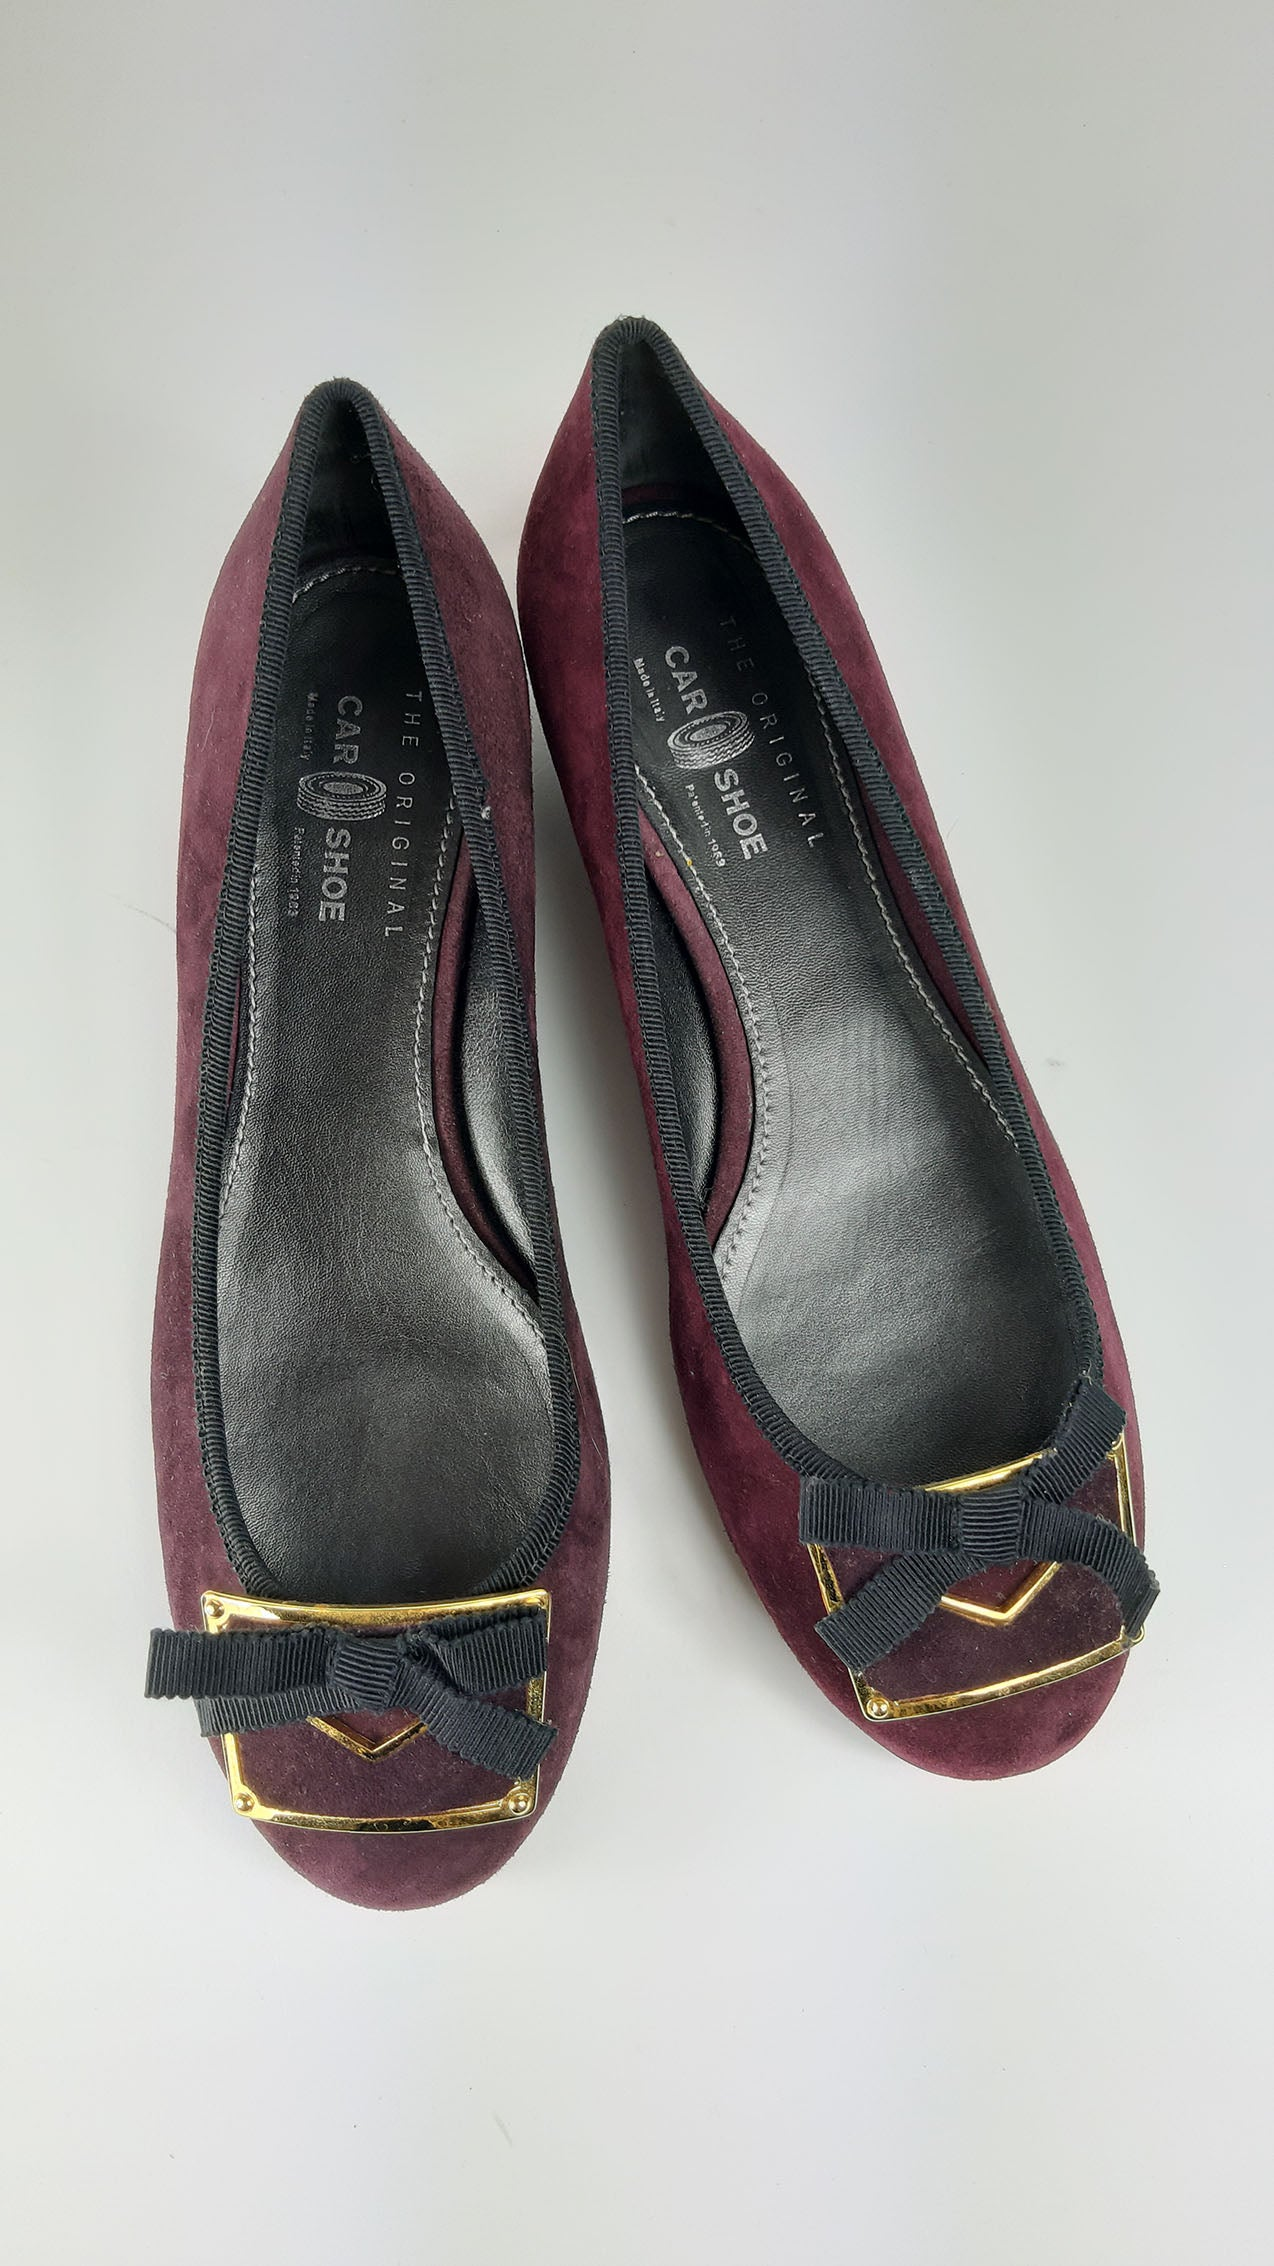 Car Shoe Suede Bordeaux Flat Shoes with Golden Detail size 39  (EU)